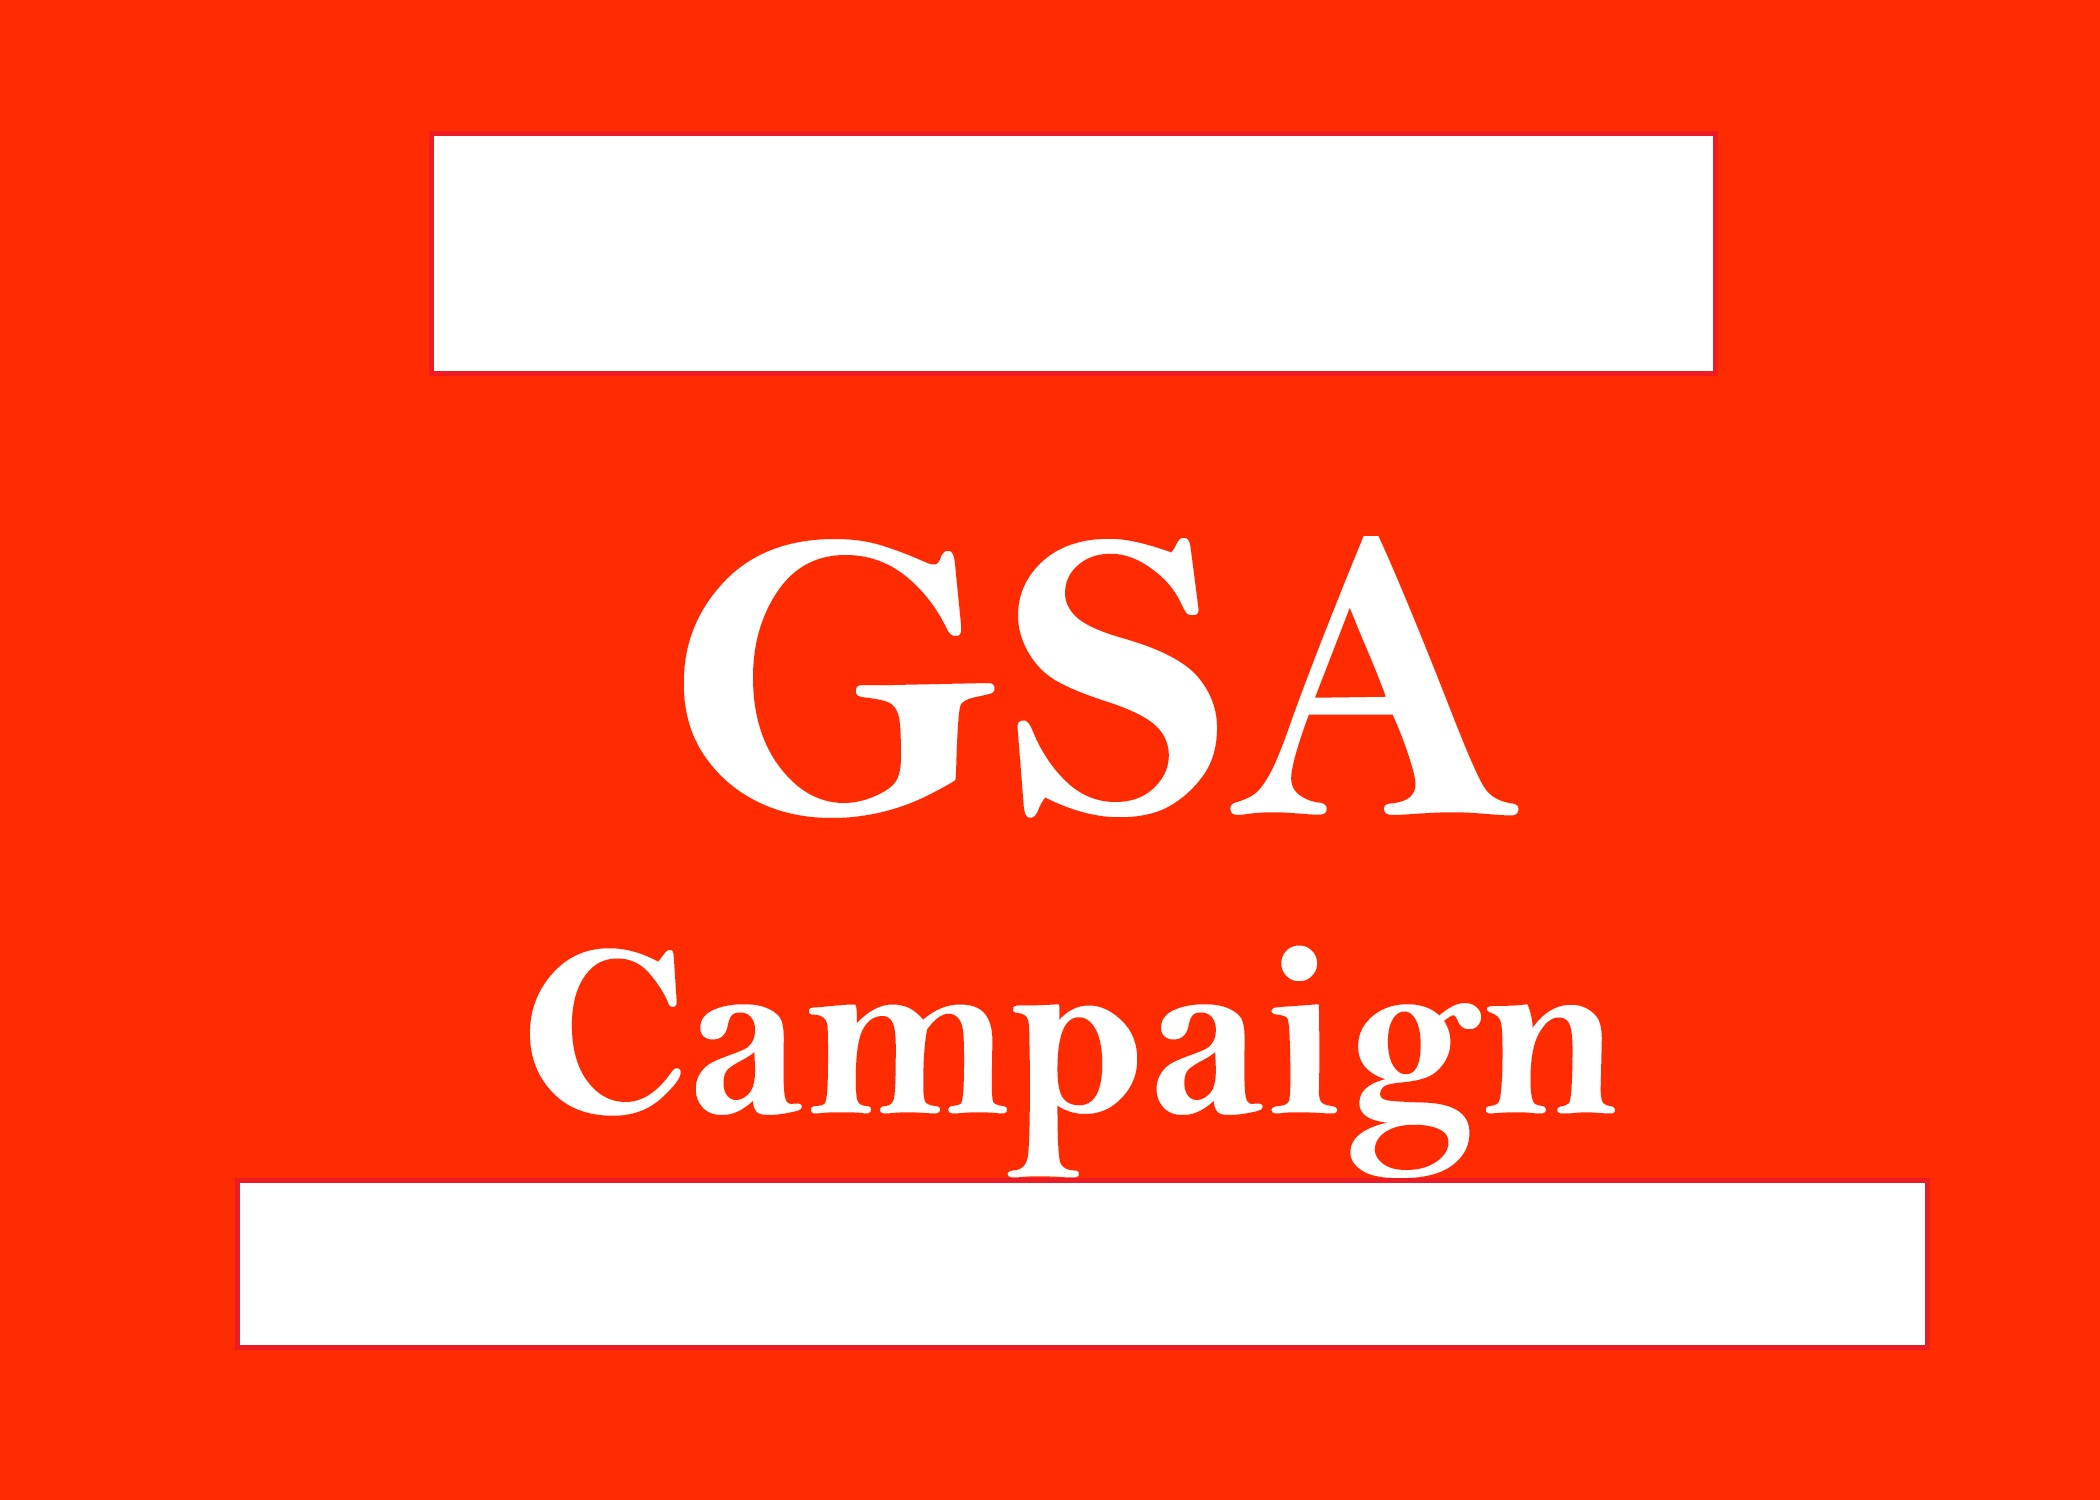 Gsa,Ser, nseo Backlinks Campaign